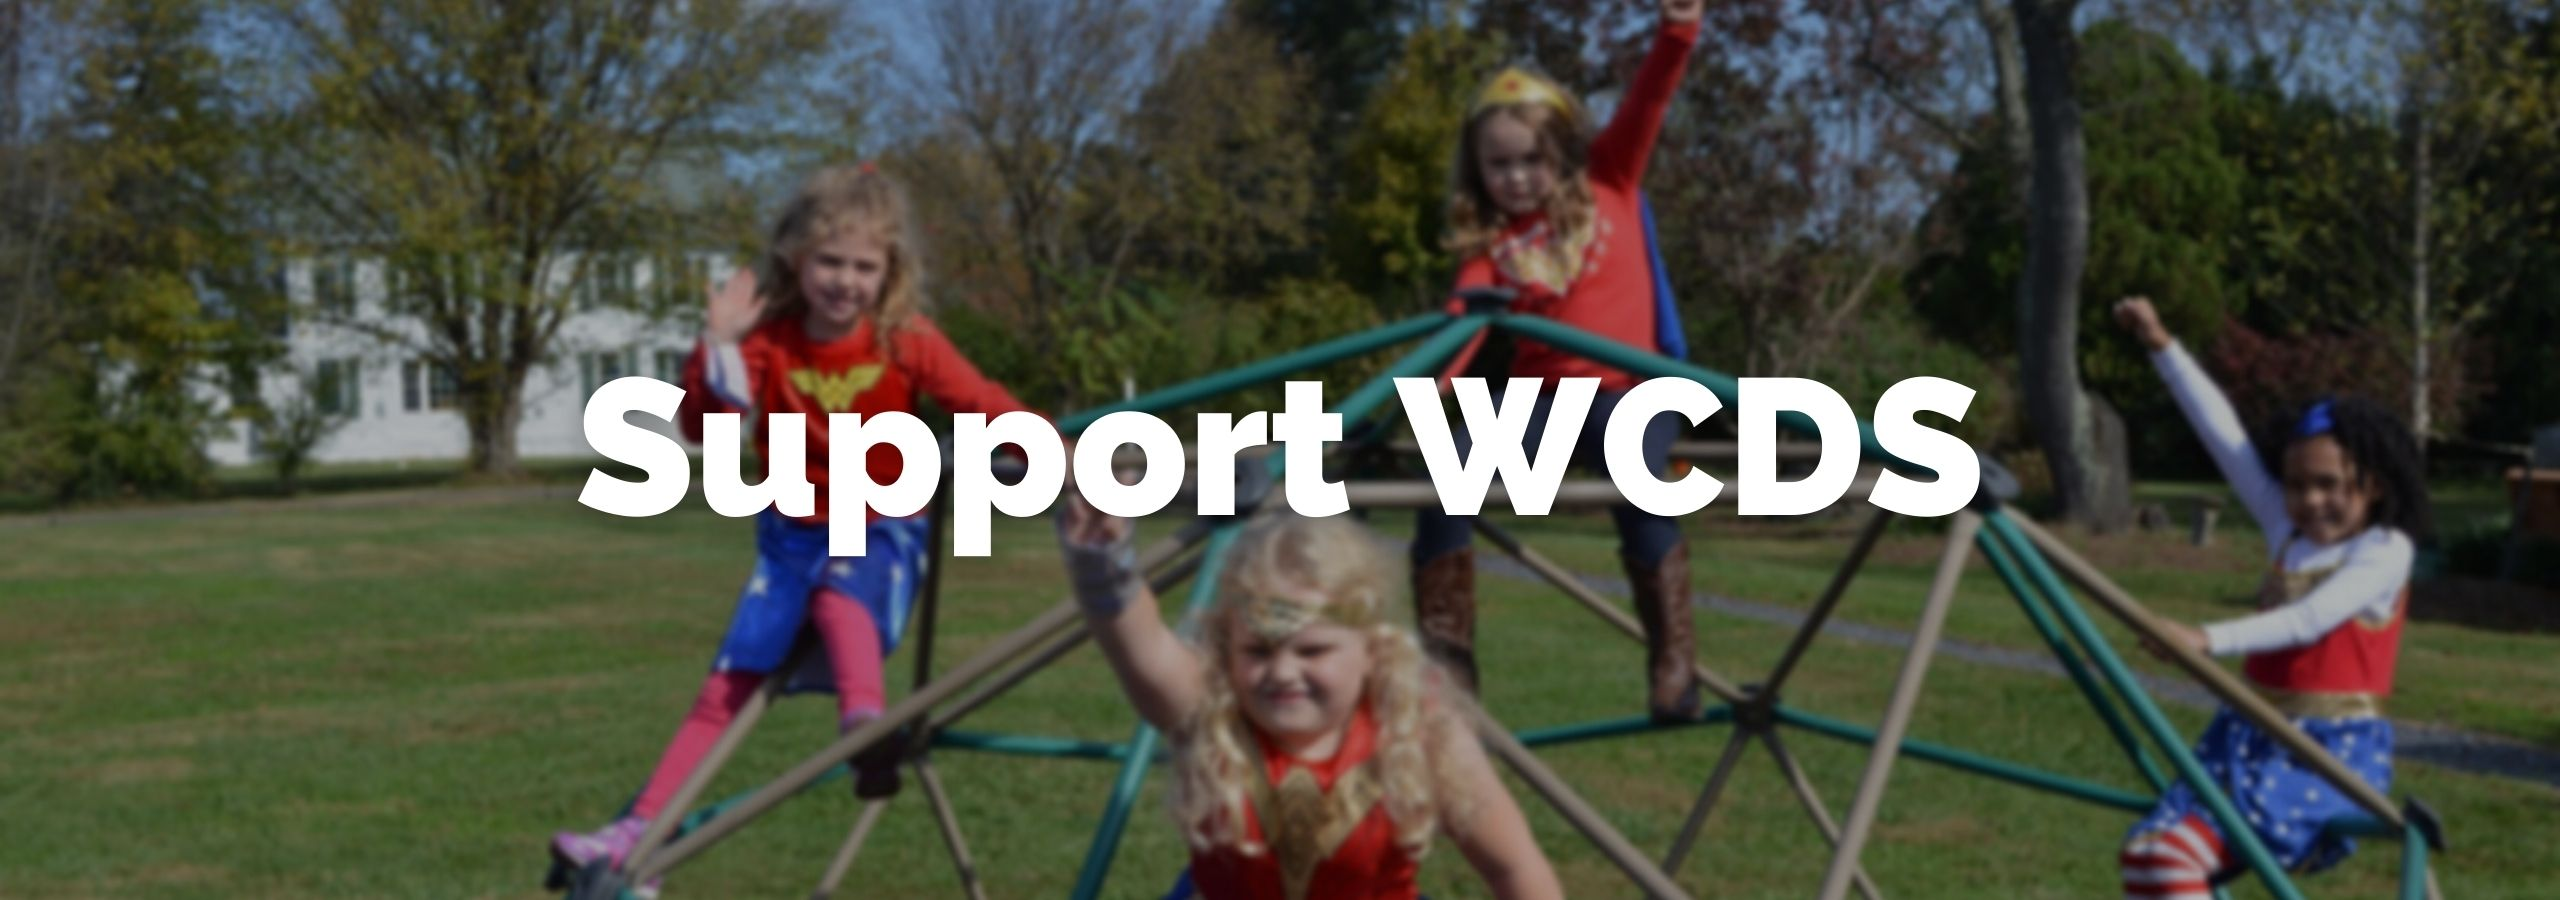 Support WCDS